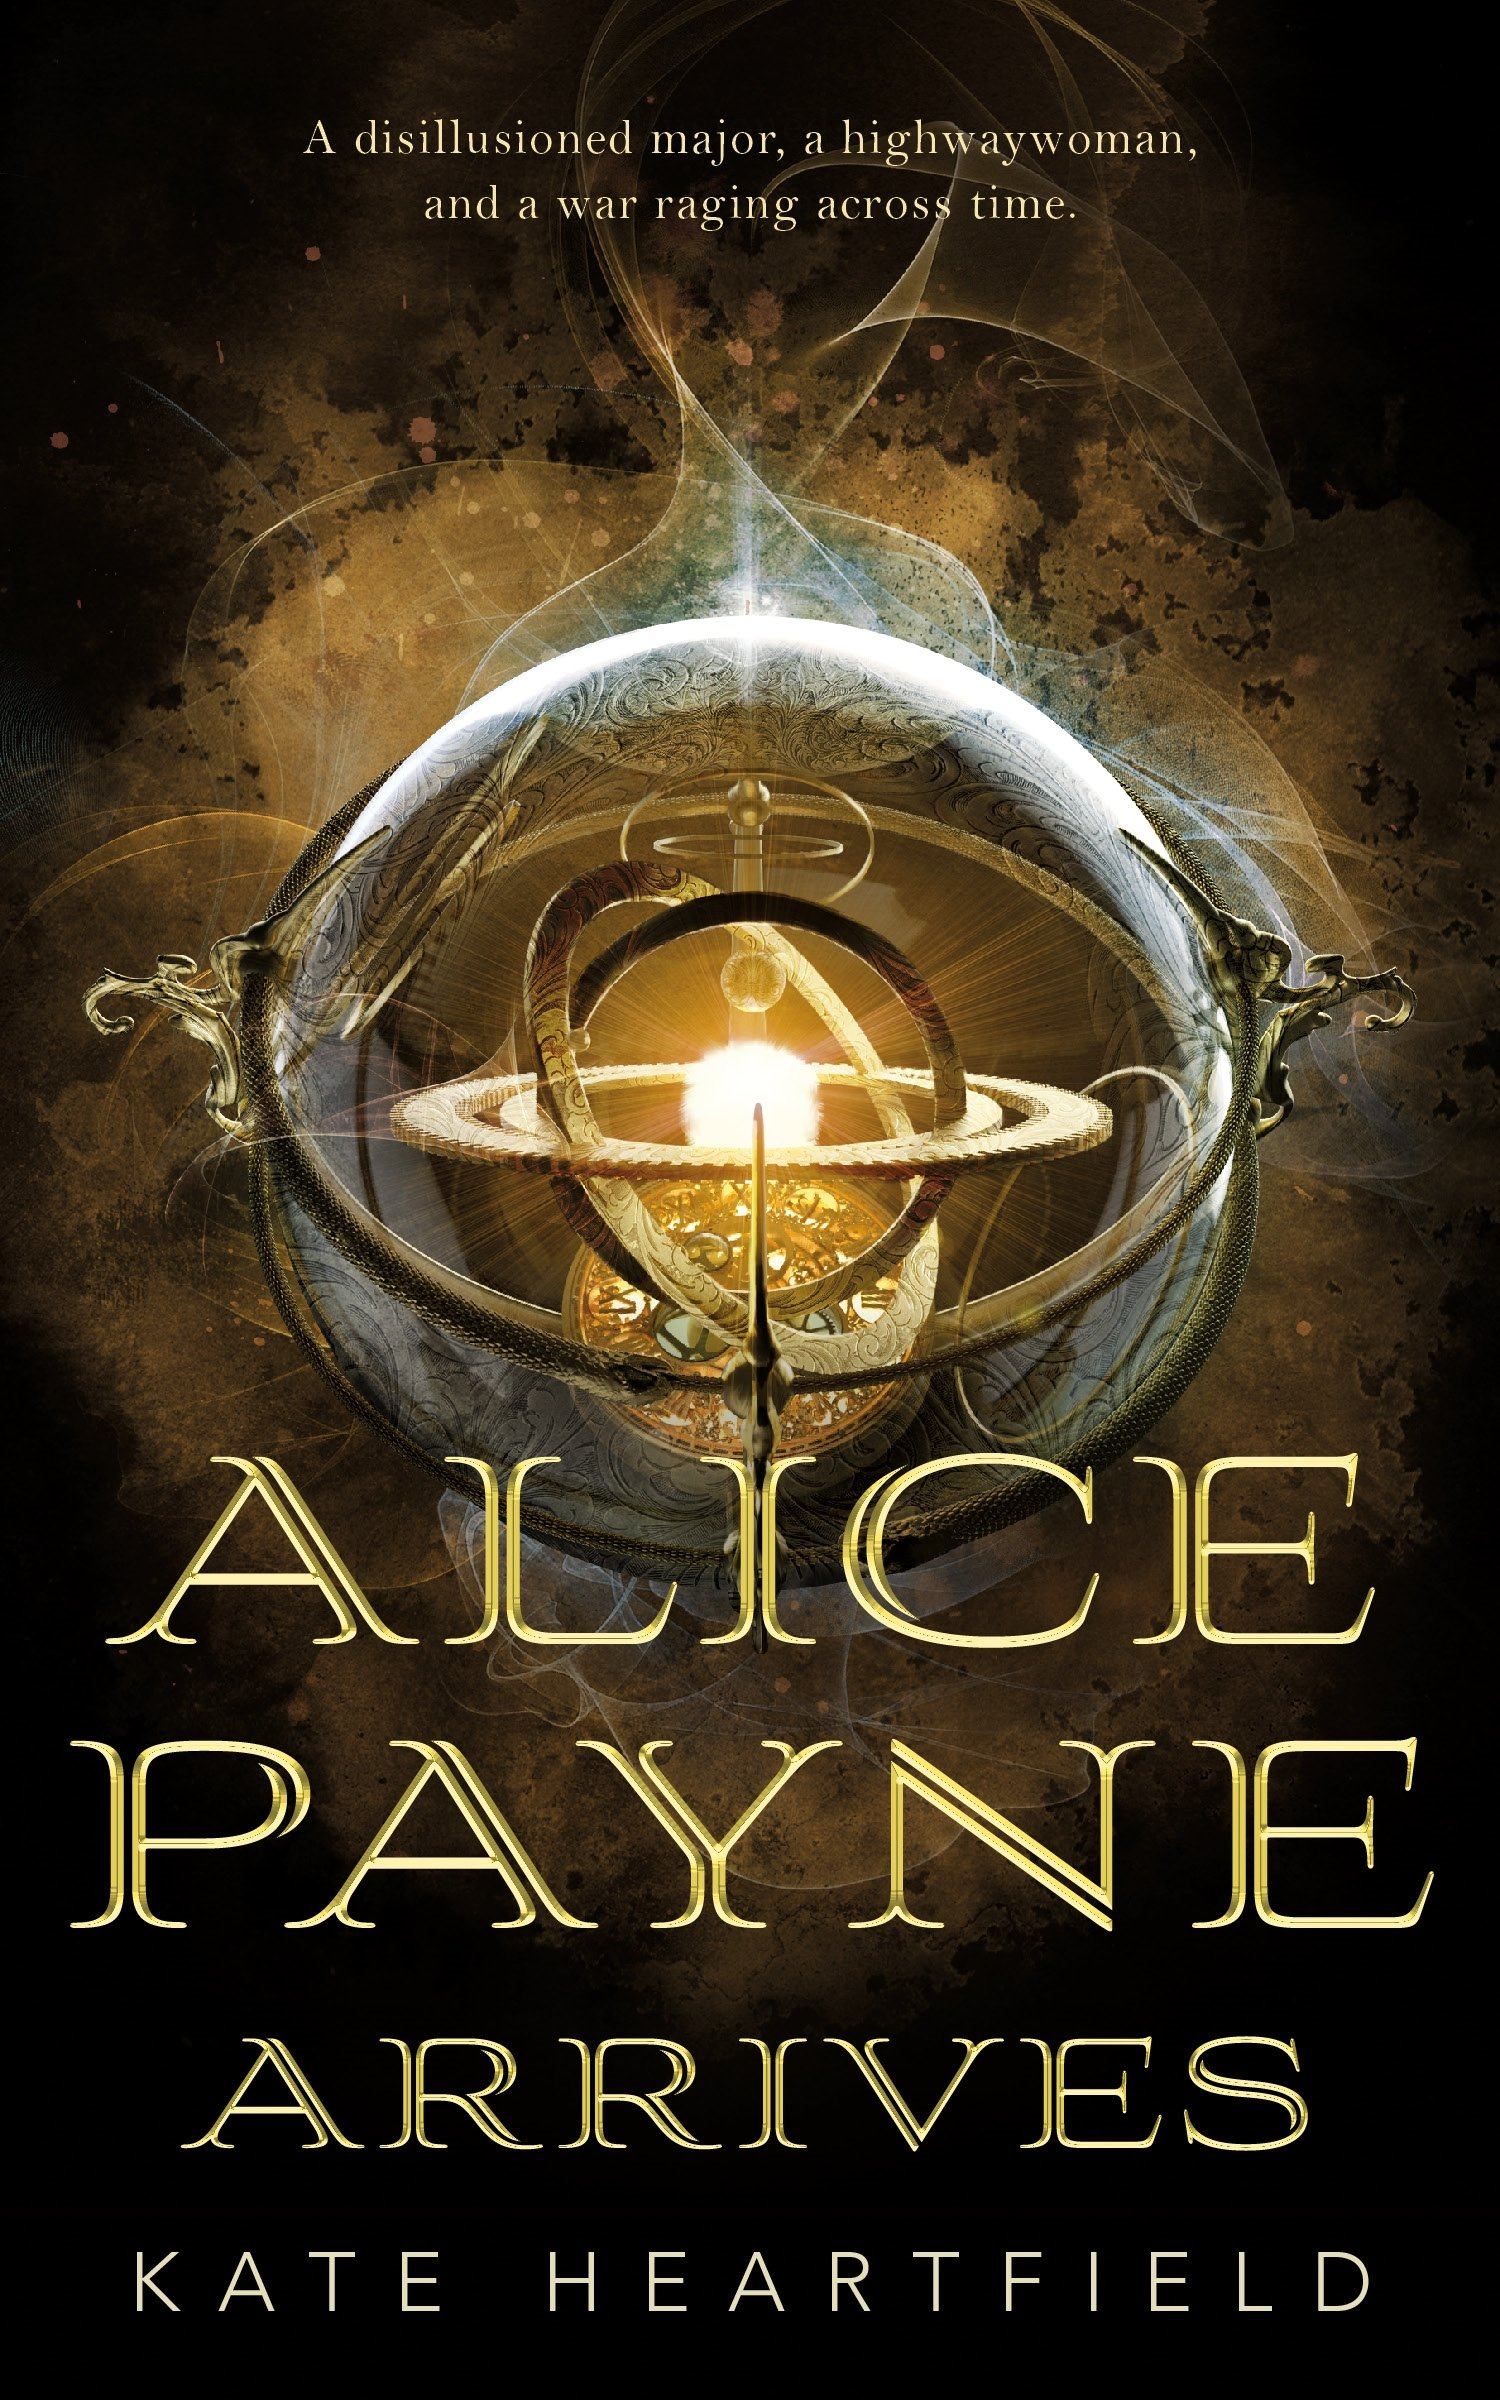 Kate Heartfield: Five Things I Learned Writing Alice Payne Arrives